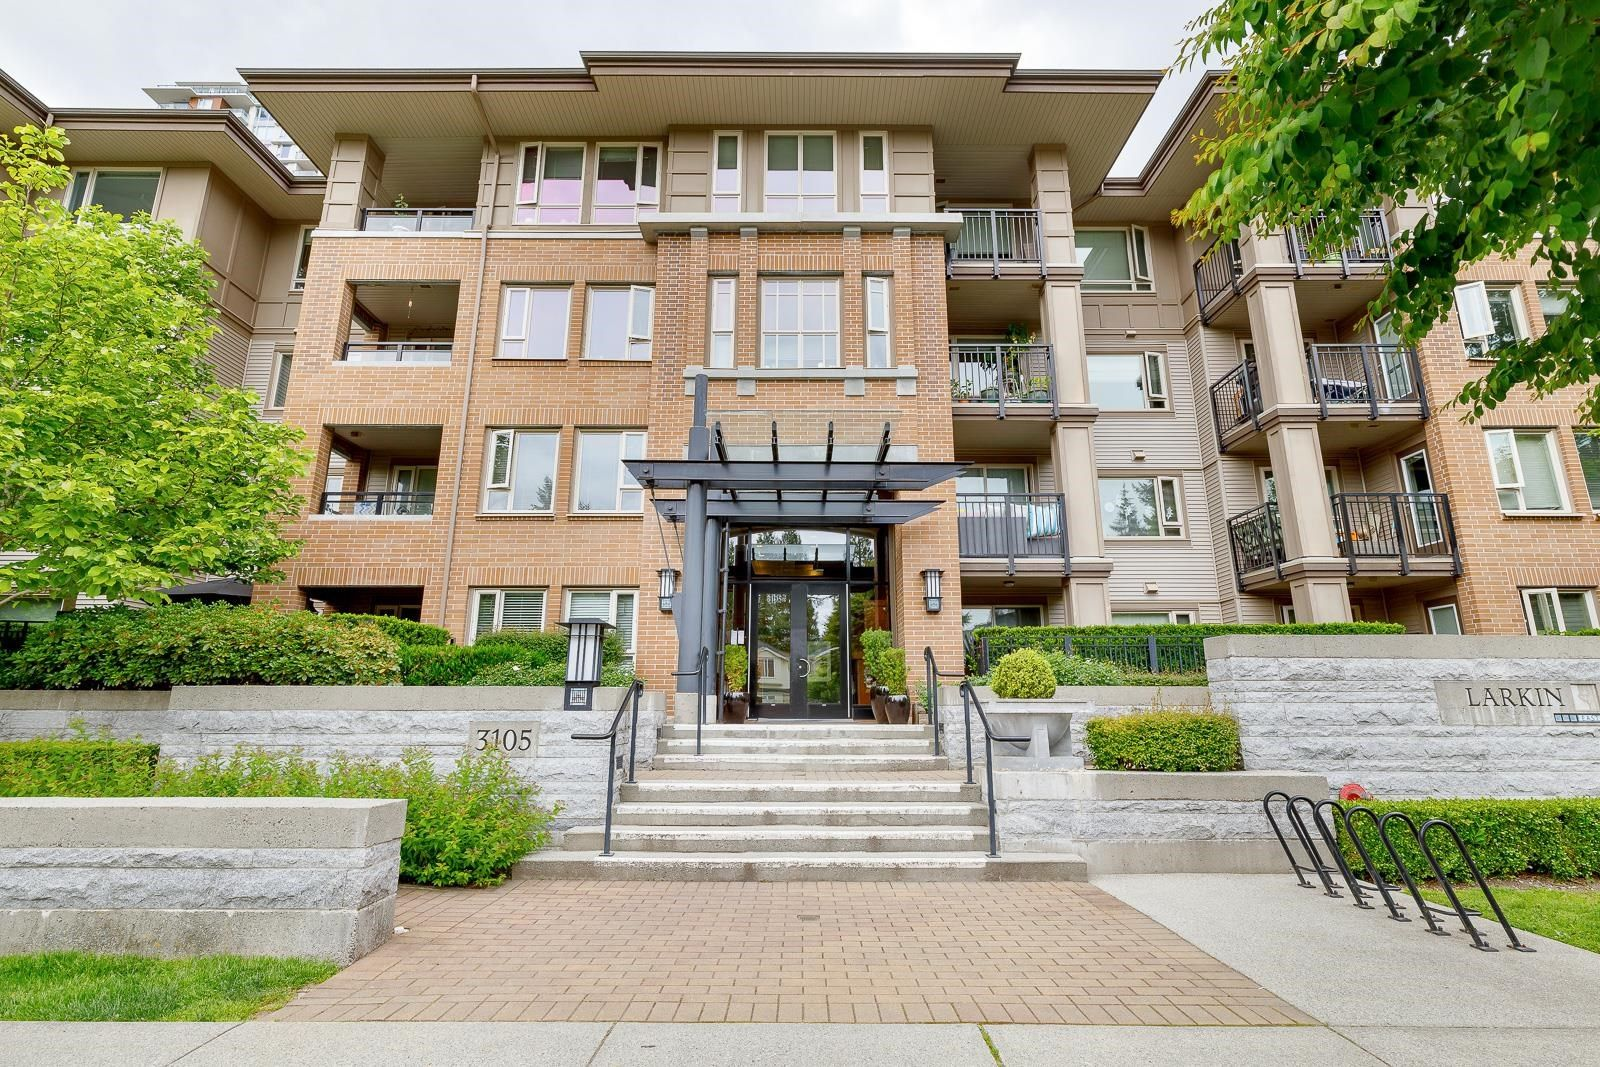 """Main Photo: 210 3105 LINCOLN Avenue in Coquitlam: New Horizons Condo for sale in """"LARKIN HOUSE"""" : MLS®# R2617801"""